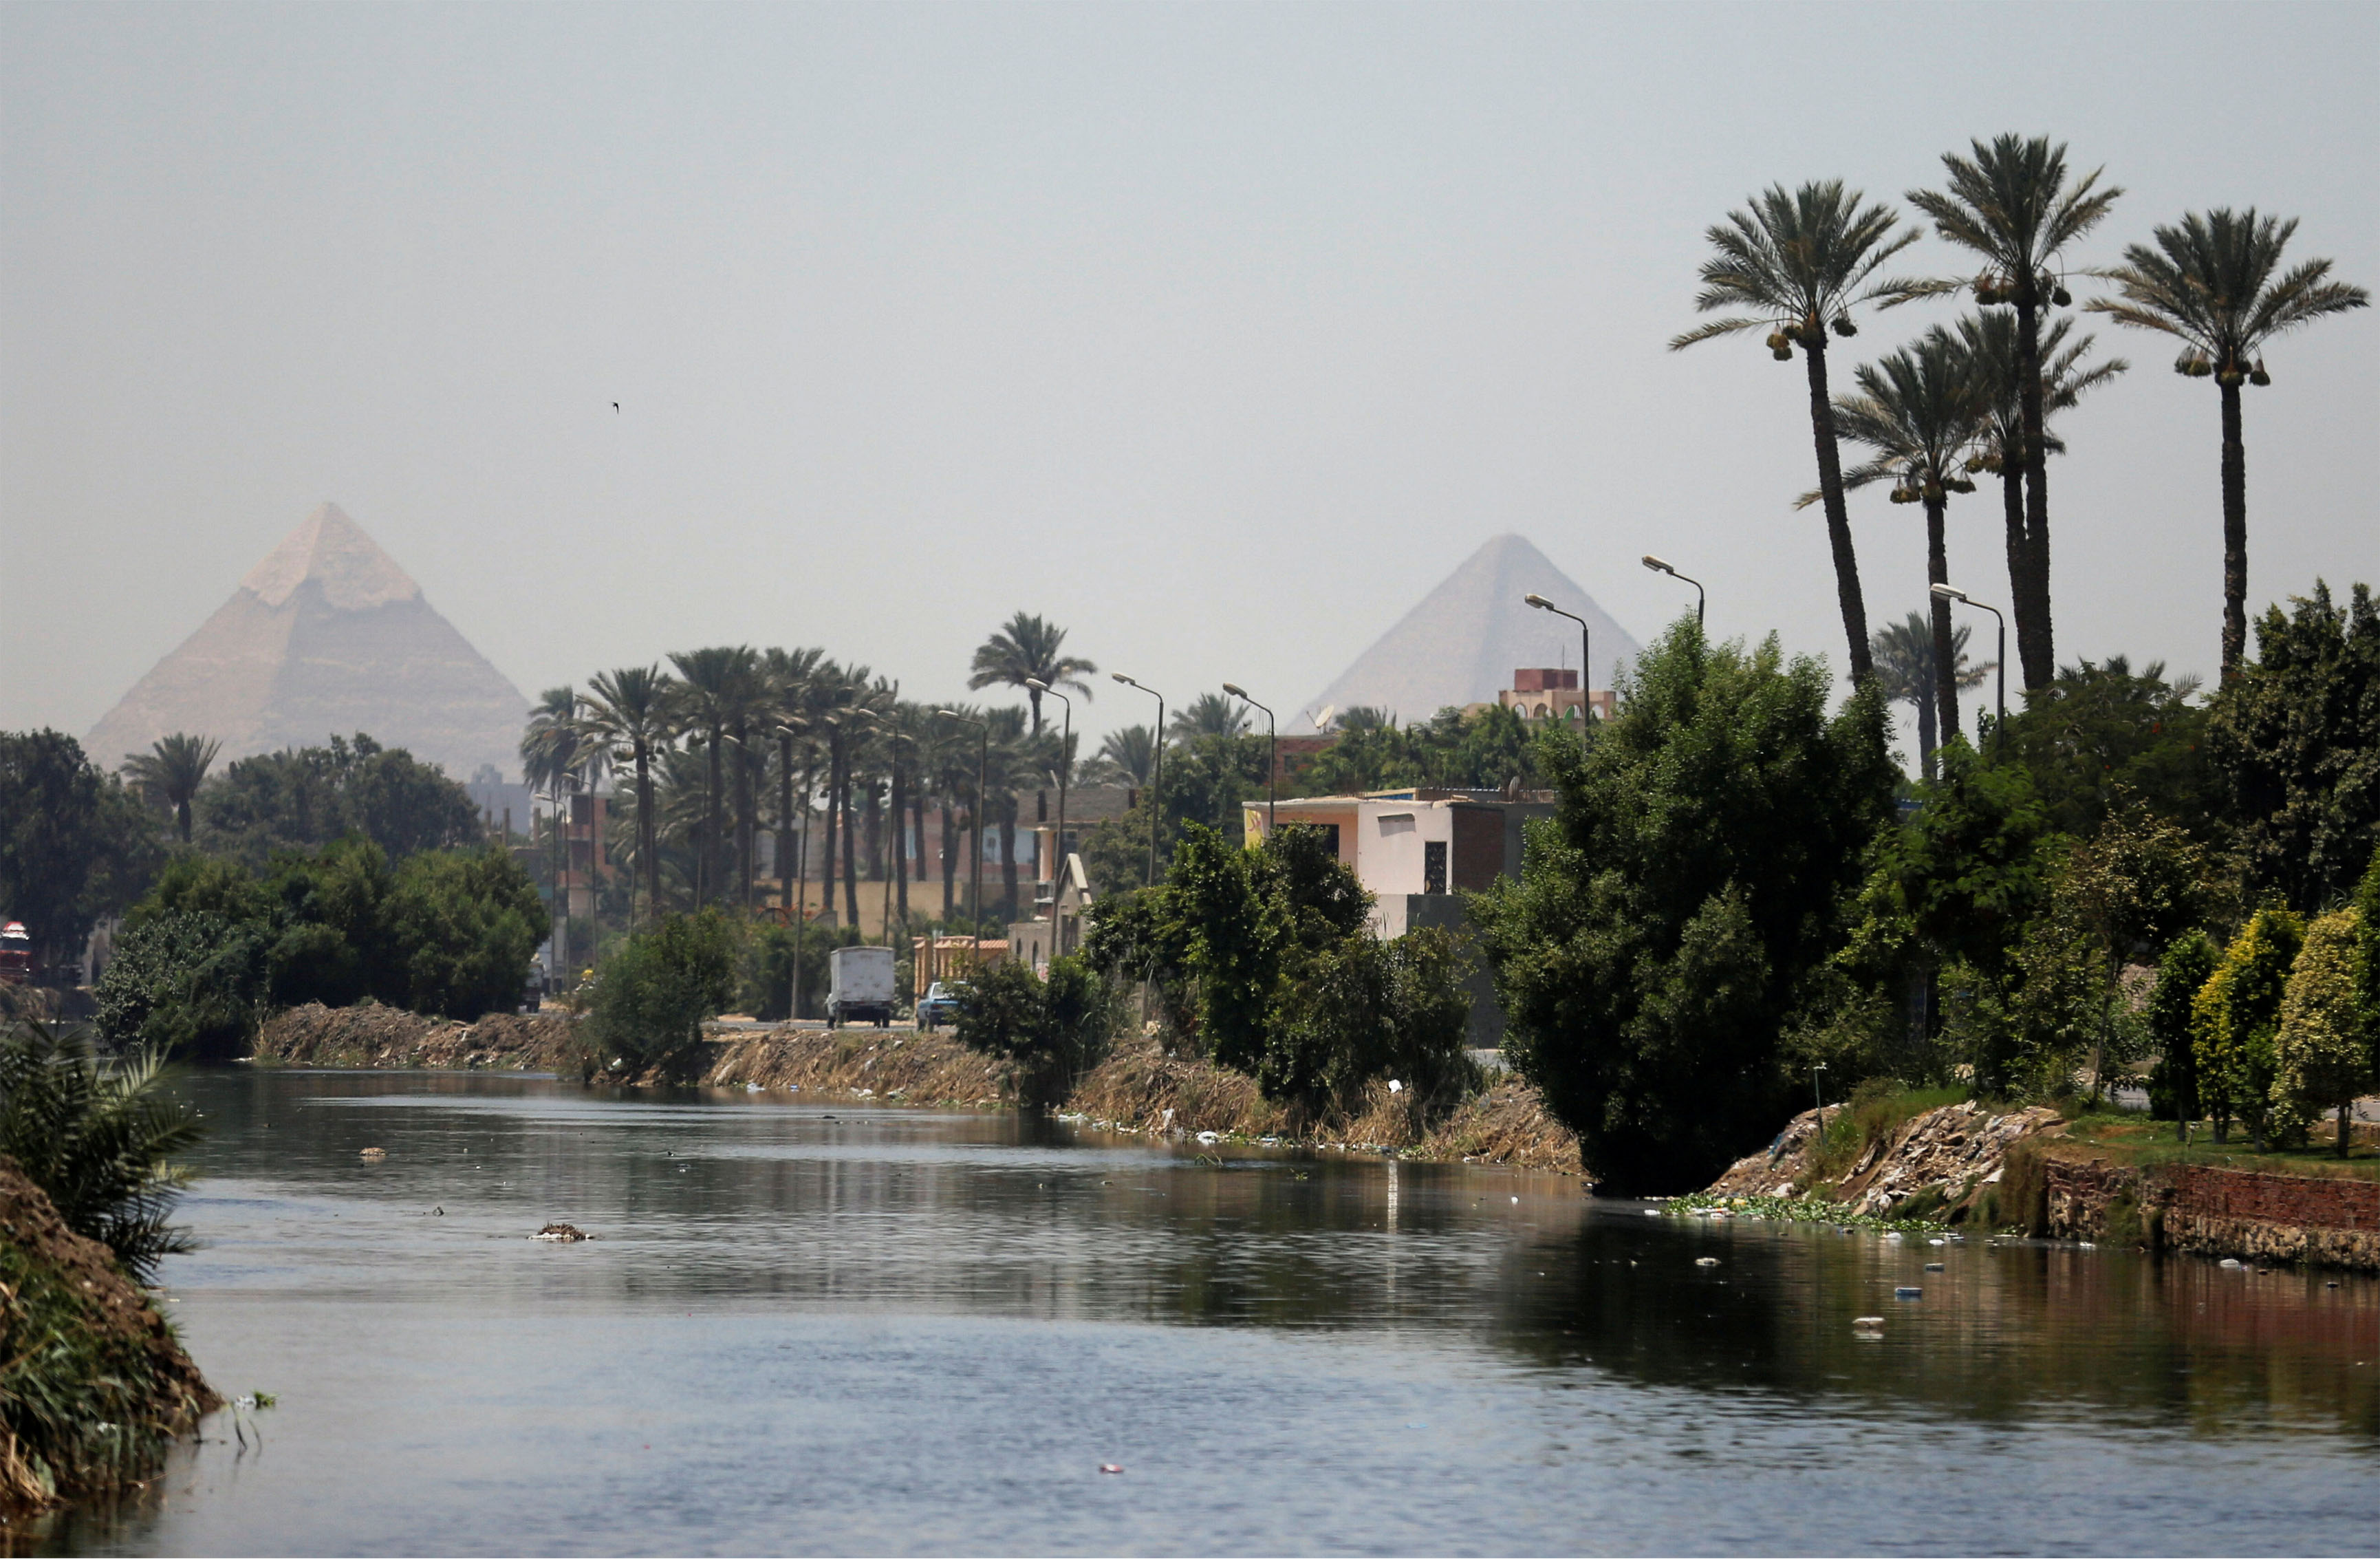 The Great Giza pyramids are seen behind a canal which flows into the River Nile on the outskirts of Cairo, Egypt August 1, 2017.